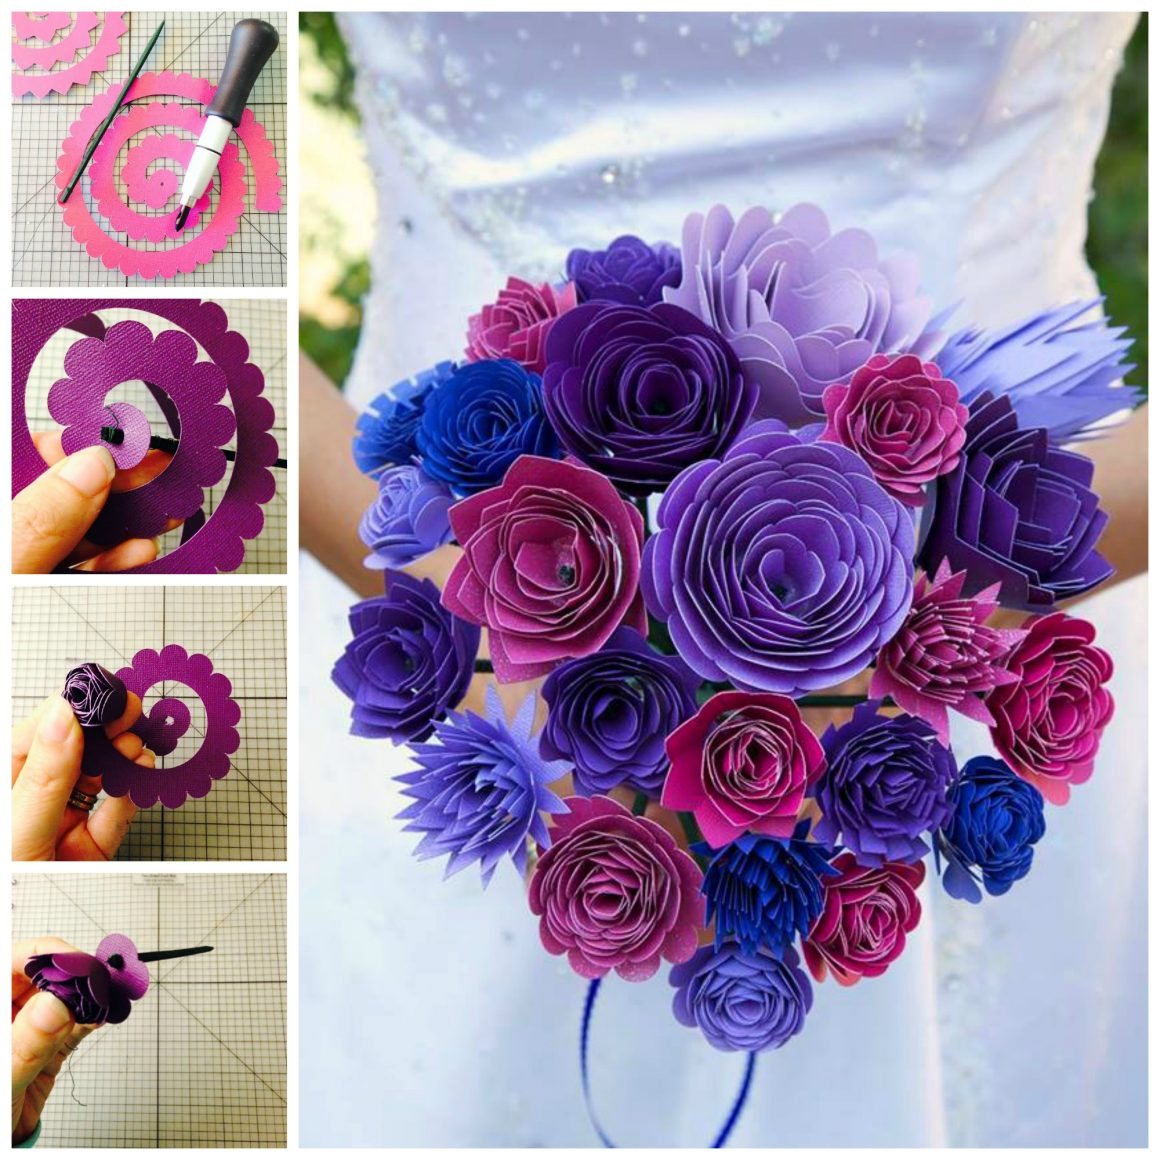 Create a gorgeous paper wedding bouquet, perfect for a wedding shower, rehearsal or even the big day, using the Cricut! With step by step photos and instructions, this tutorial is a snap!